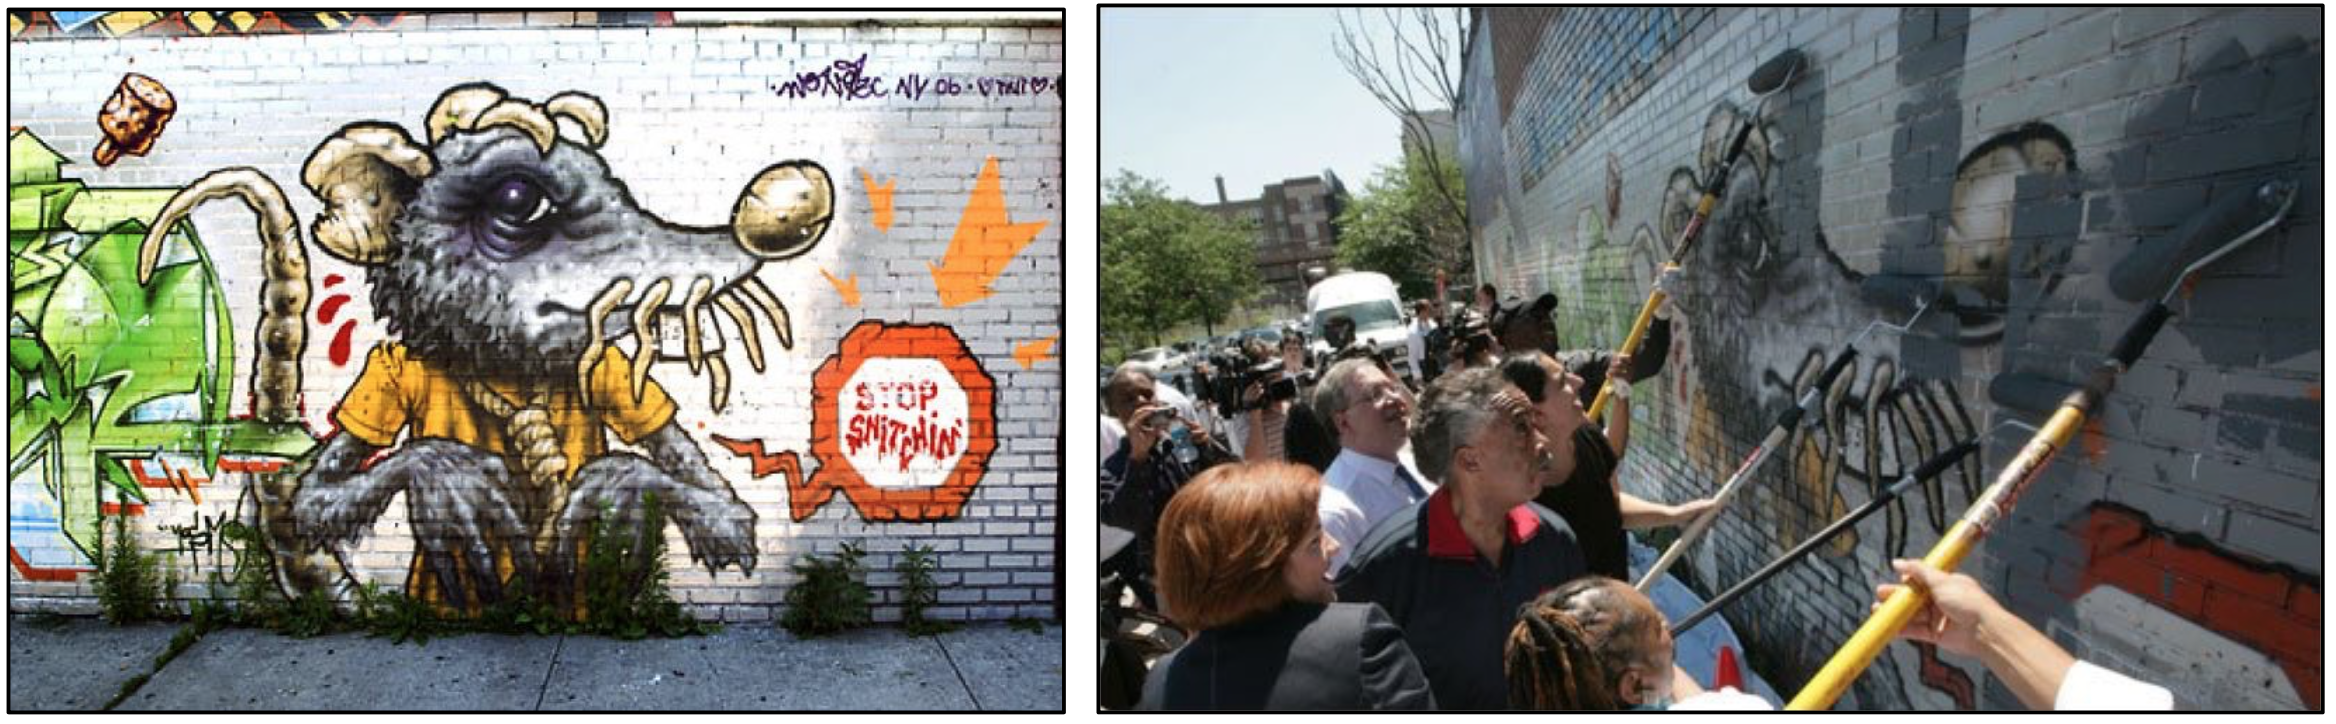 On the left, mural of a rat. with a noose around its neck. On the right, a crowd covering up the mural with paint.